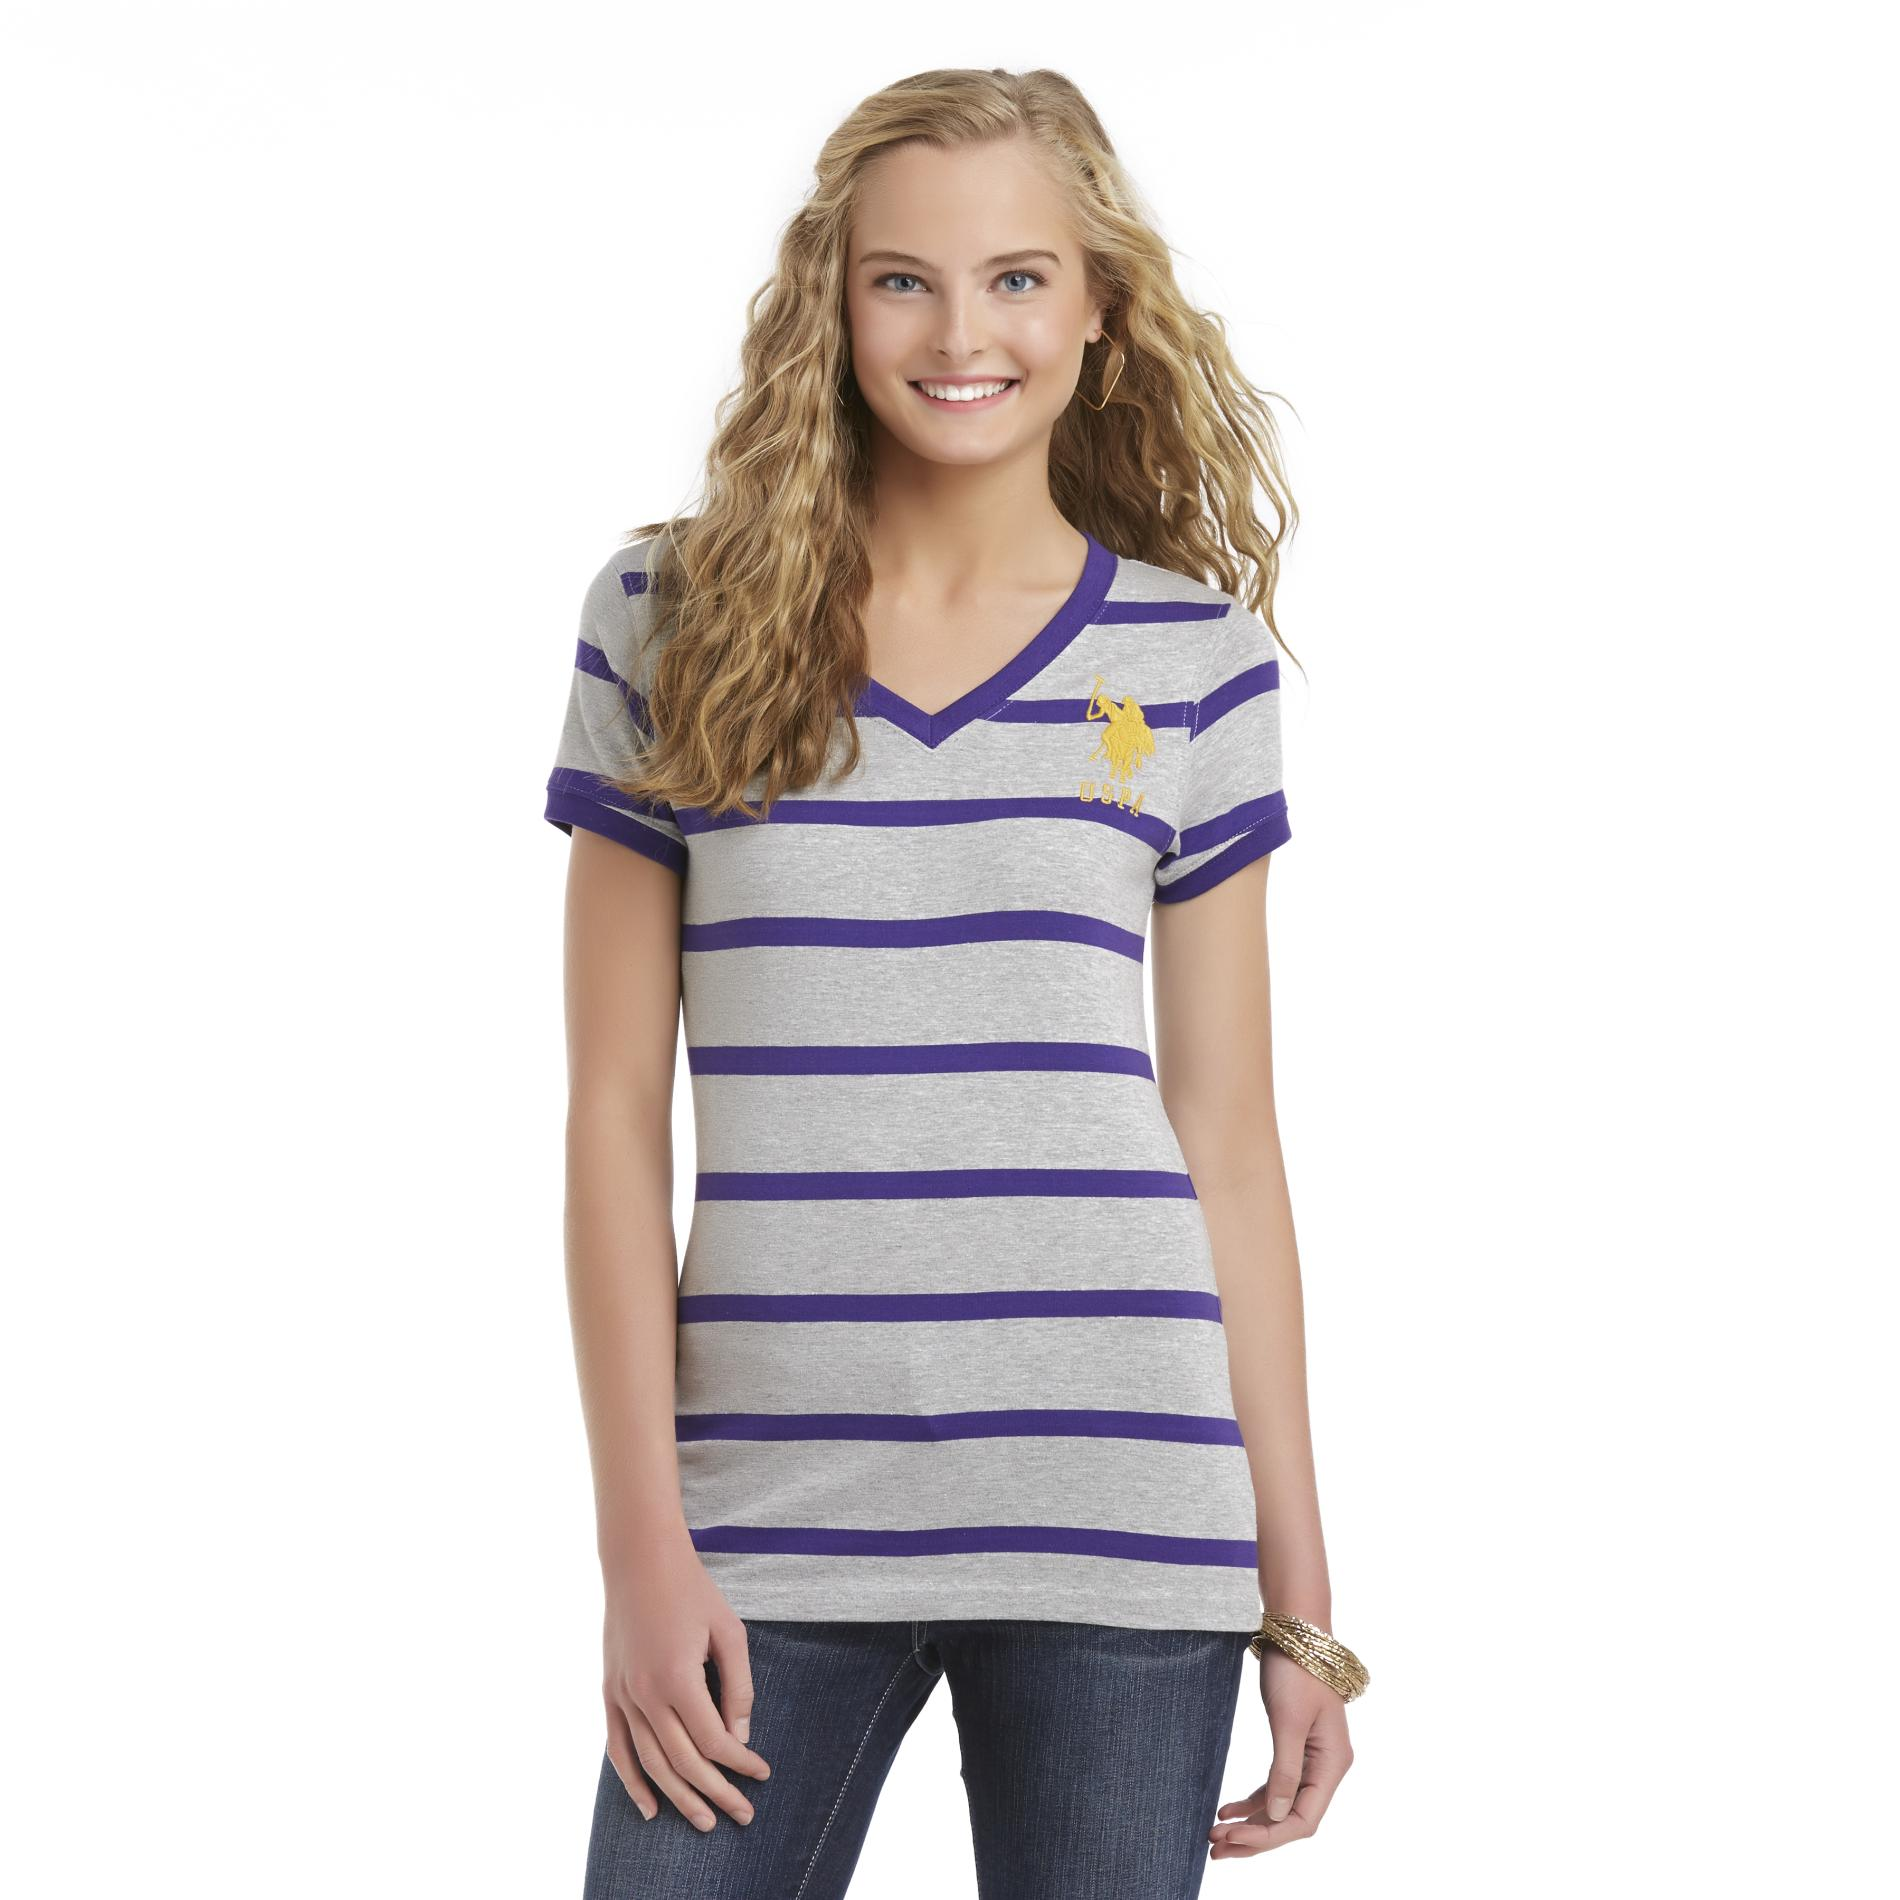 U.S. Polo Assn. Junior's Fitted T-Shirt - Striped at Sears.com